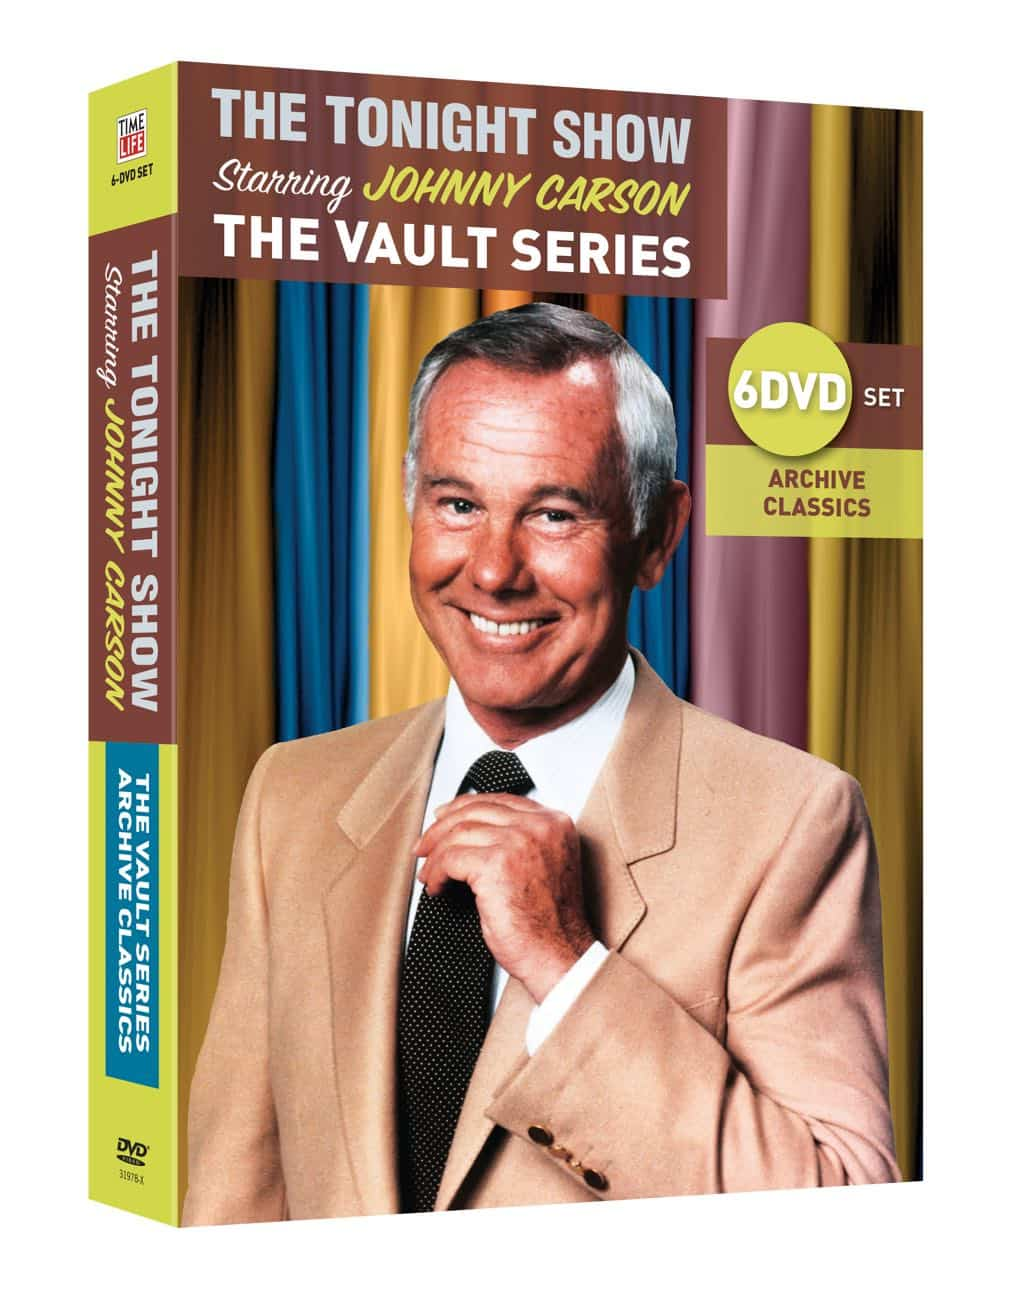 THE TONIGHT SHOW STARRING JOHNNY CARSON THE VAULT SERIES